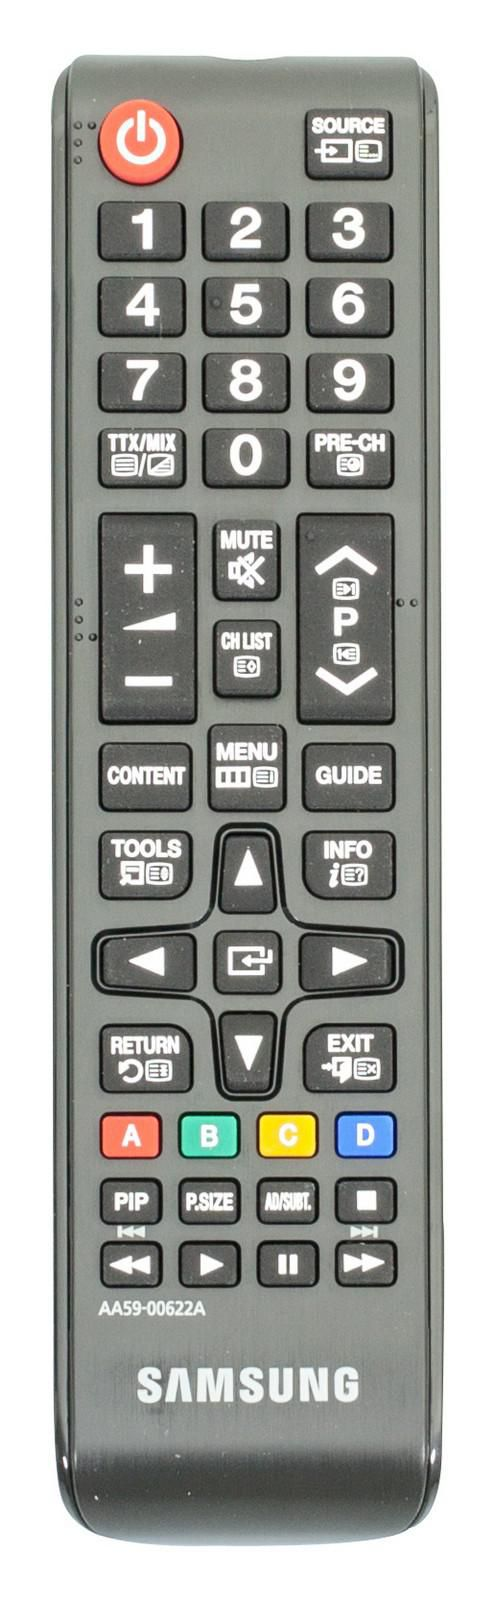 Samsung Remote Commander TM1240 Europe - Approx 1-3 working day lead.